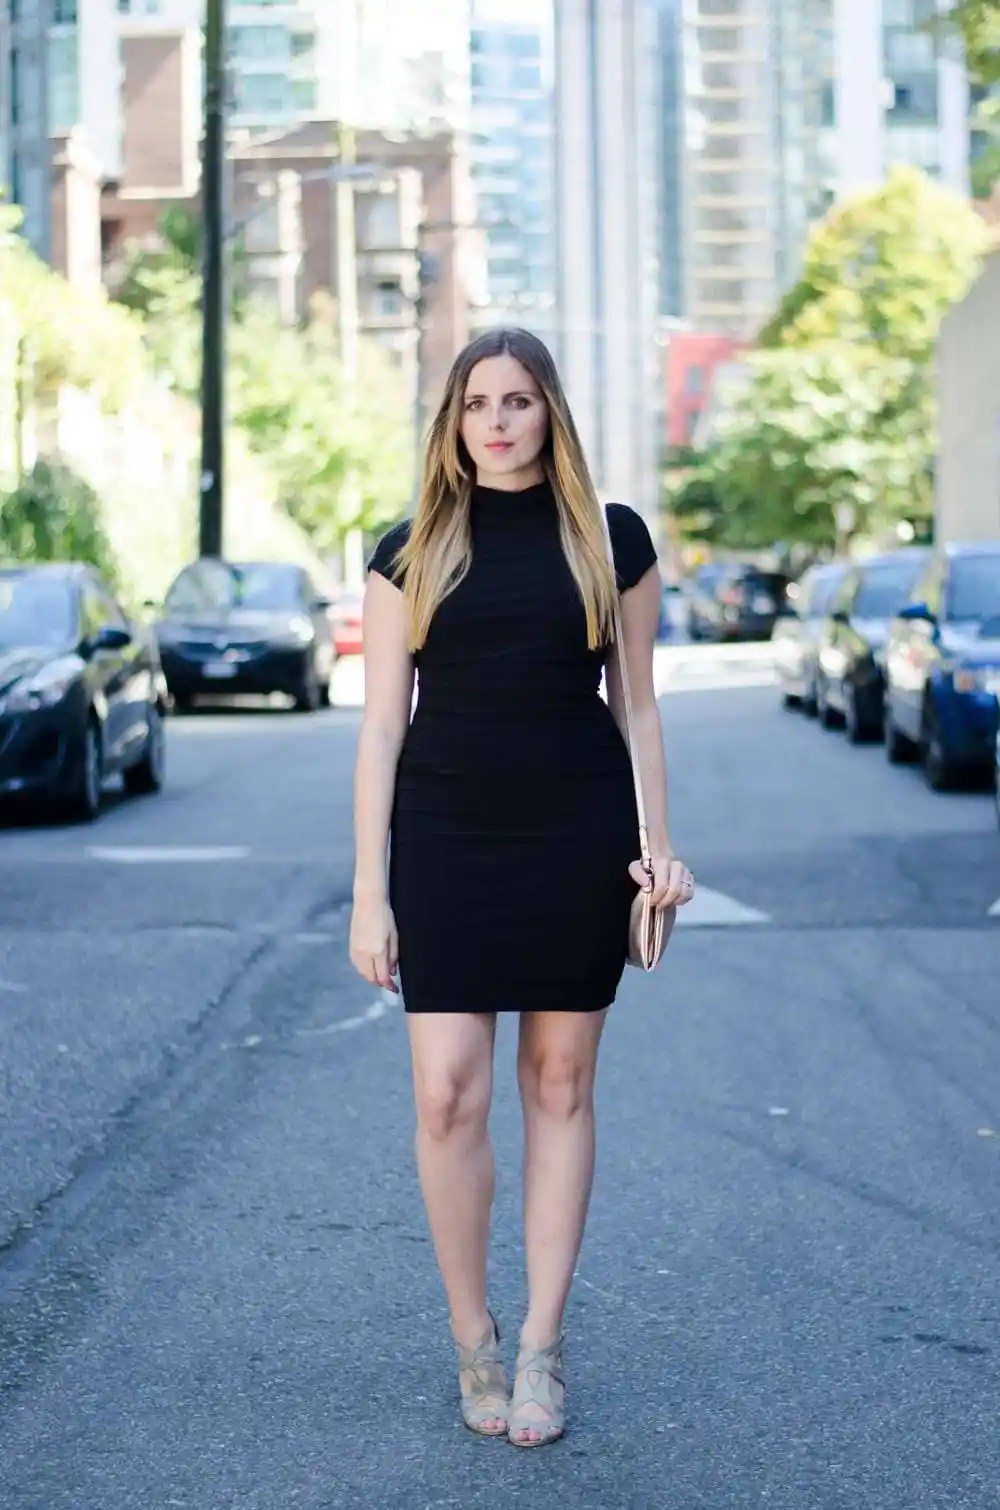 What mean does dress bodycon use it shops near outlet